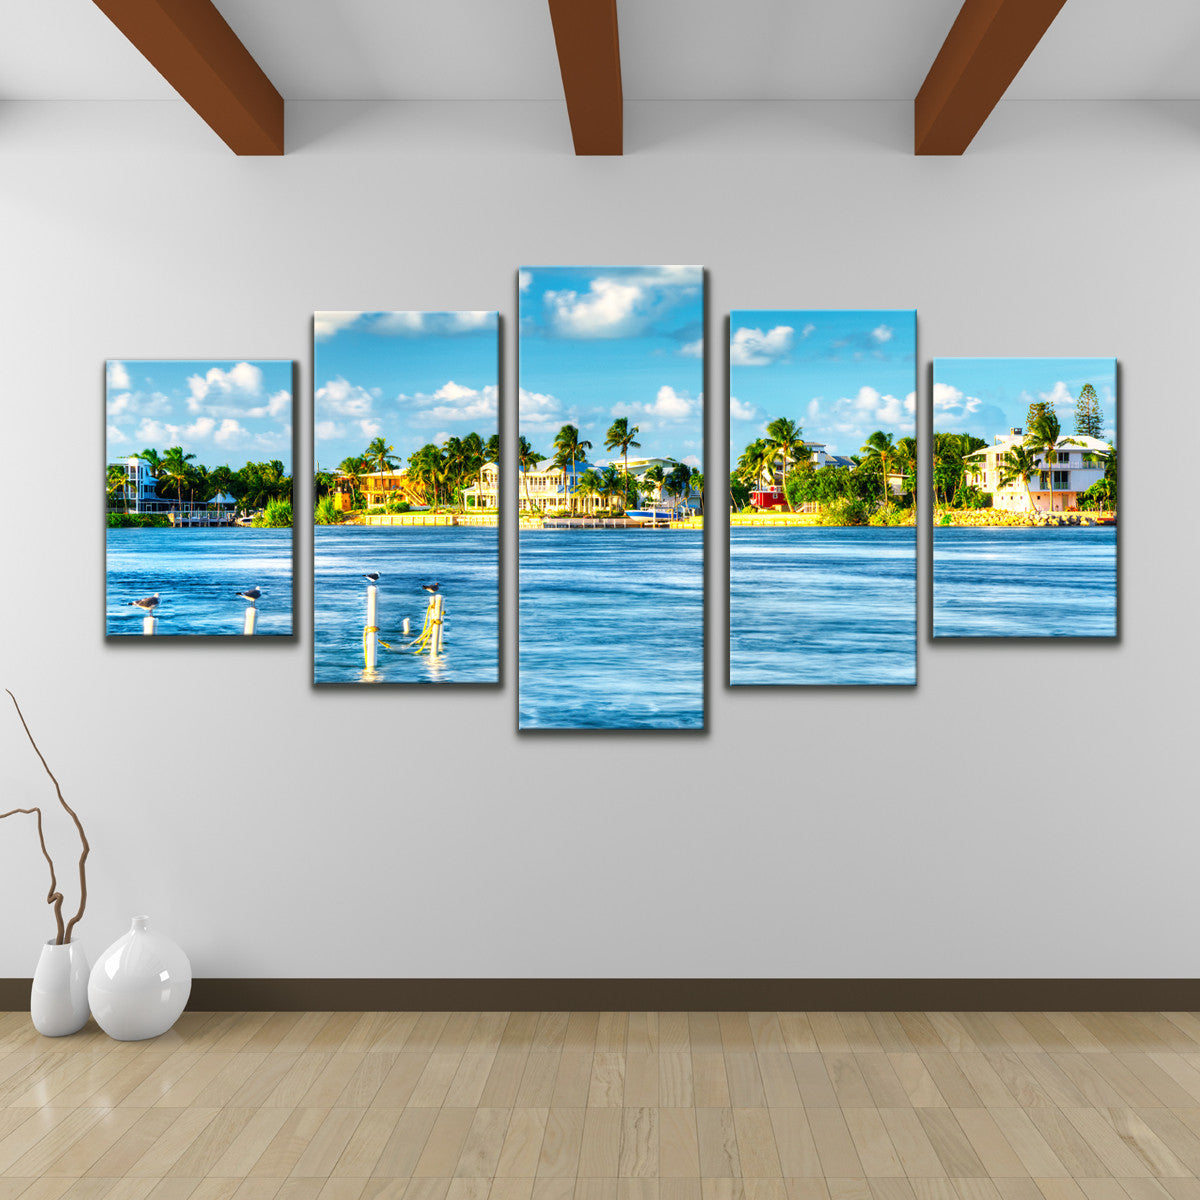 Bruce Bain 'Key's Canal' 30x60 inch Canvas Wall Art (5-Pcset)